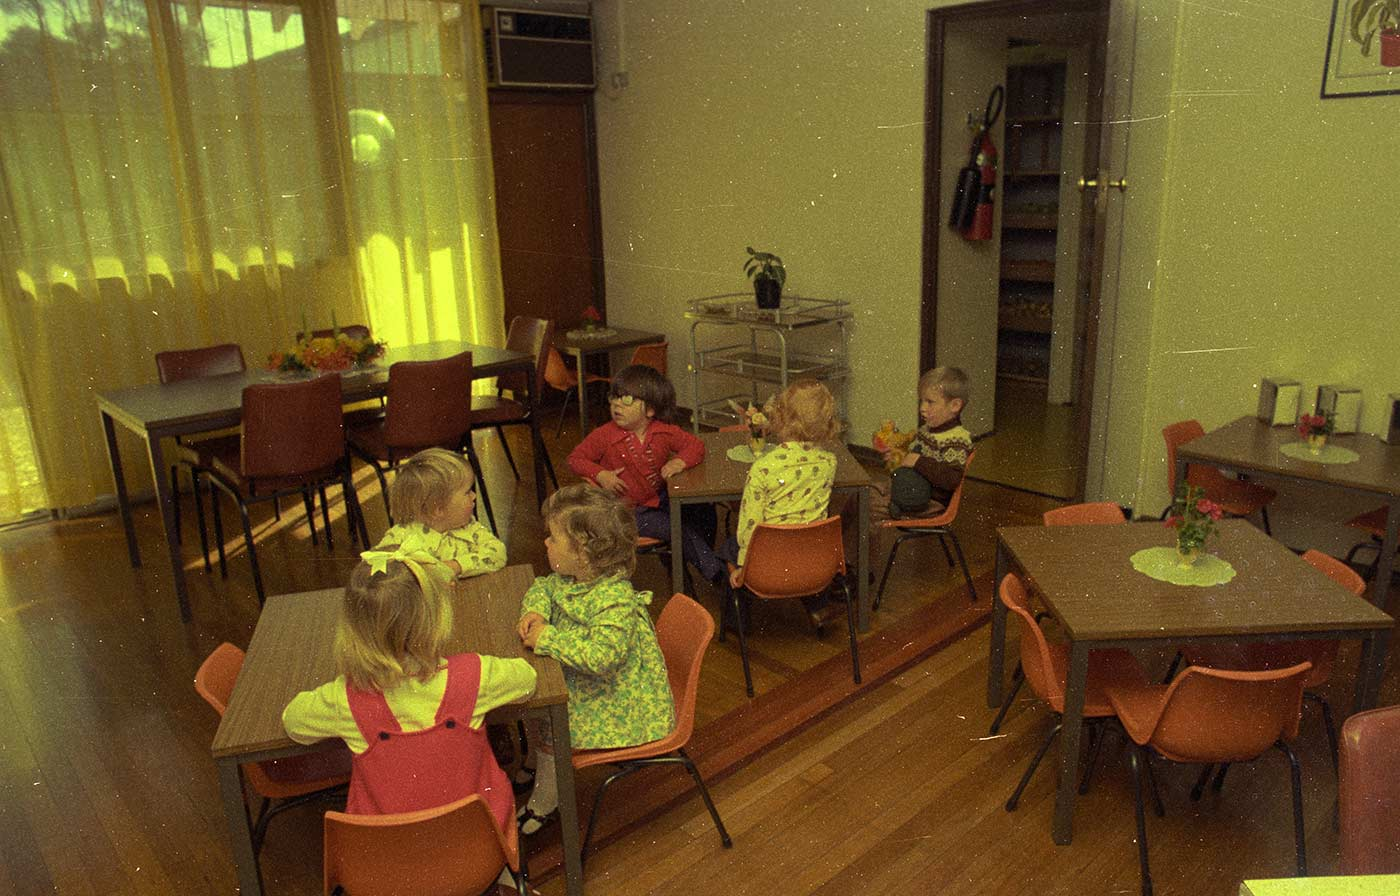 Colour photo showing a dining room with four small, brown veneer-topped tabled tables with chairs of orange moulded plastic. Two groups of three small children sit at the central tables. A larger table sits to the left. - click to view larger image